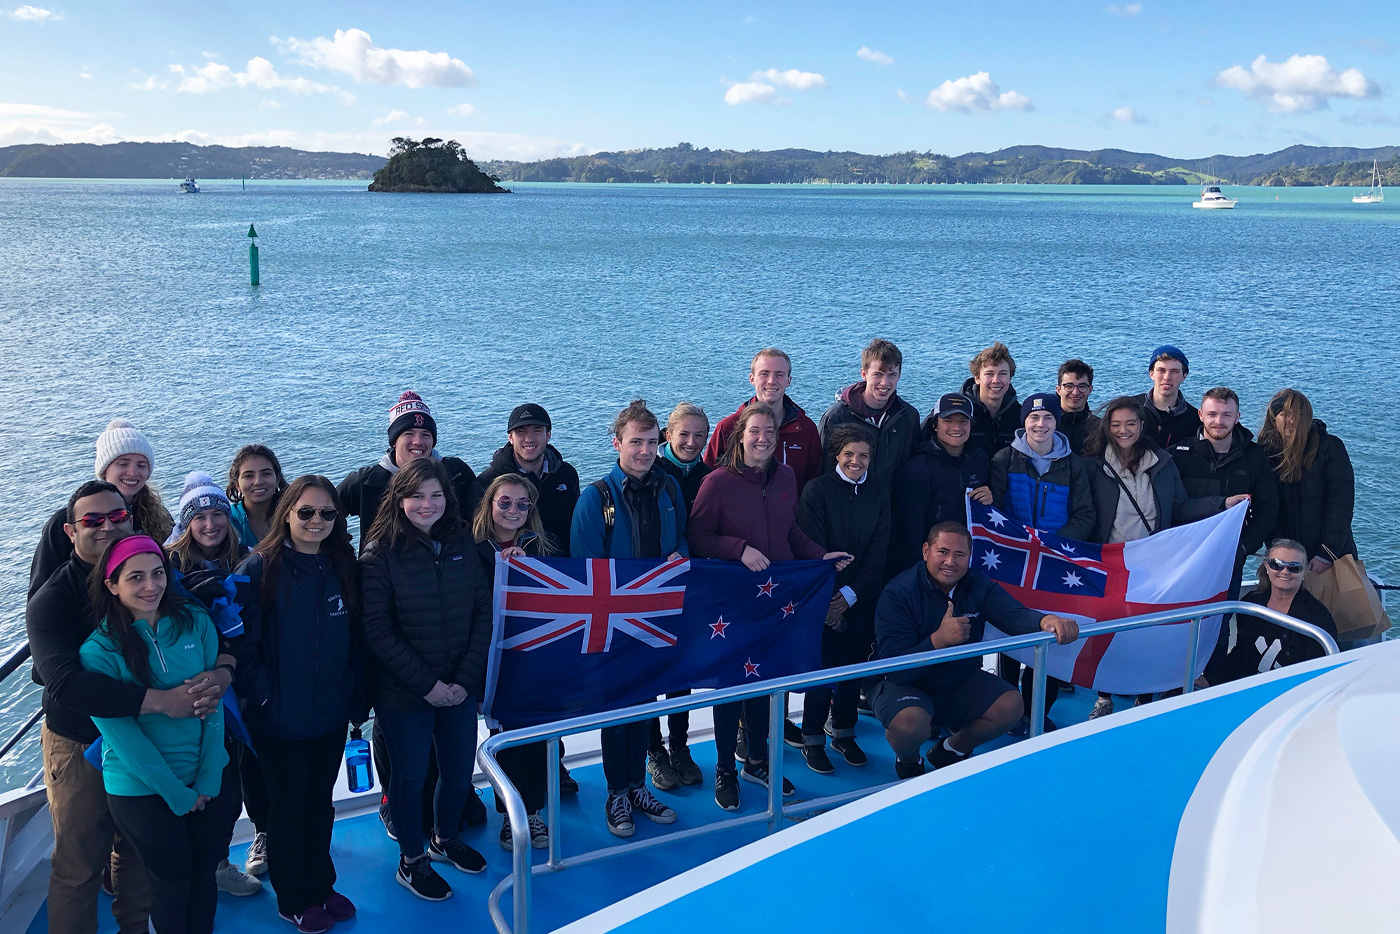 New-Zealand-Gap-Year-Adventure-Hole-in-the-rock-CruiseNorthern-Adventure-Tour-New-Zeland-Adventure-Tours-NZ-Tours-&-Travel-Kiwi-Small-Group-Tours-Gap-Year-Tour-in-New-Zeland-Grabatour-Travel